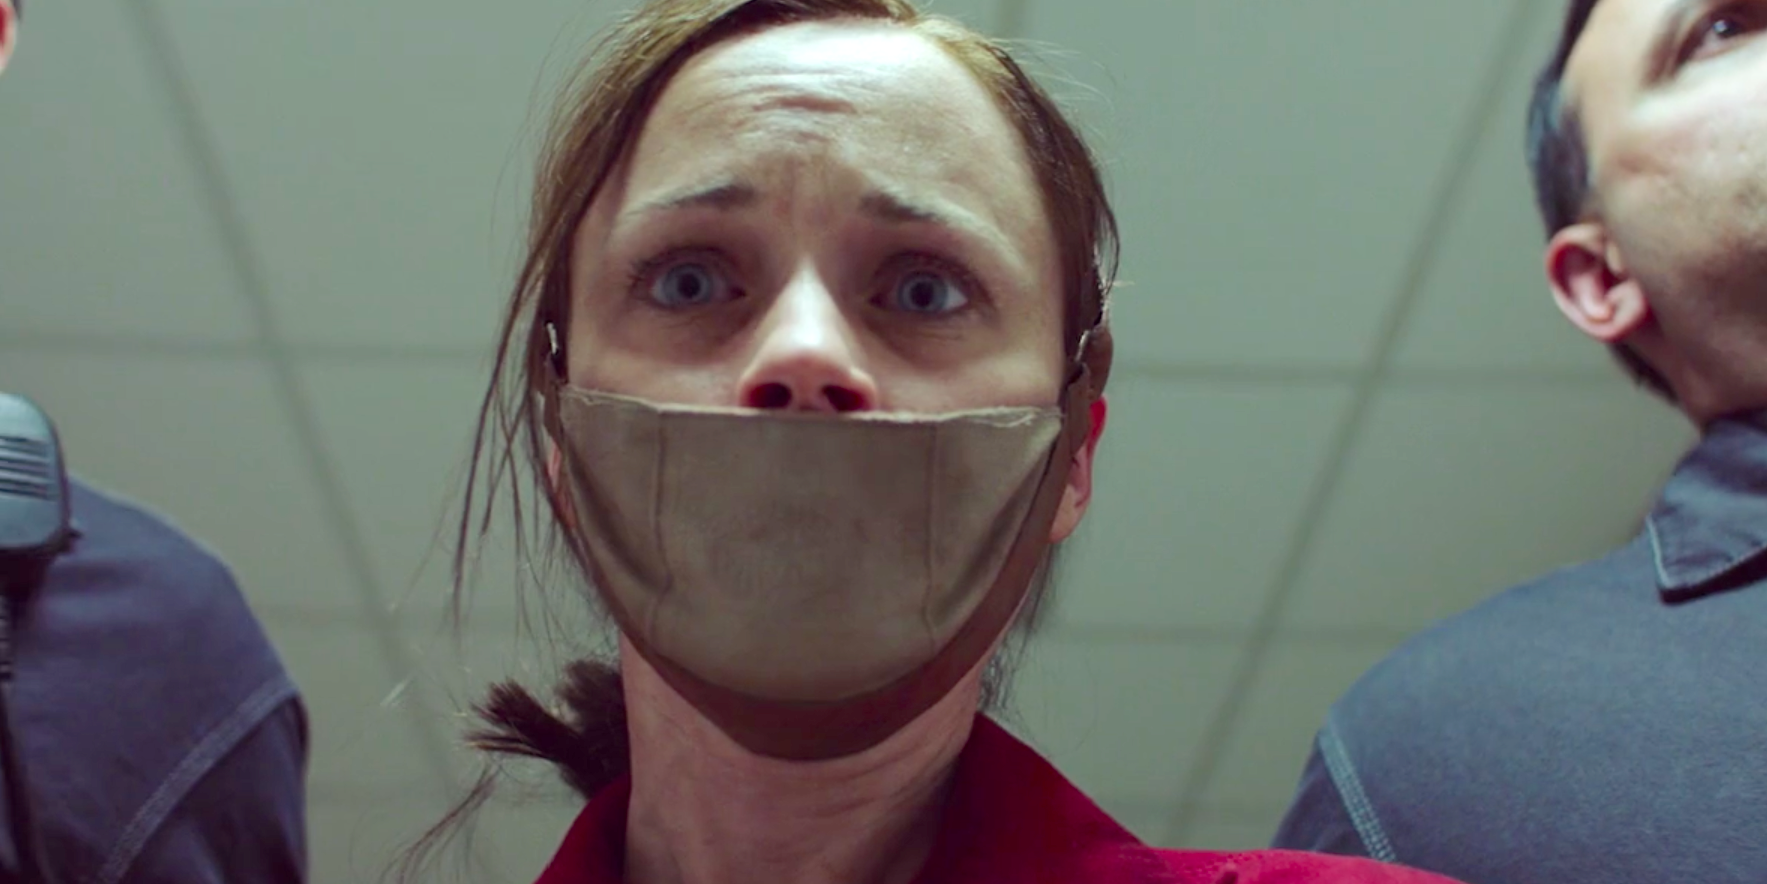 Does the handmaids tale predict the future or is it alarmist alexis bledel hulu biocorpaavc Gallery